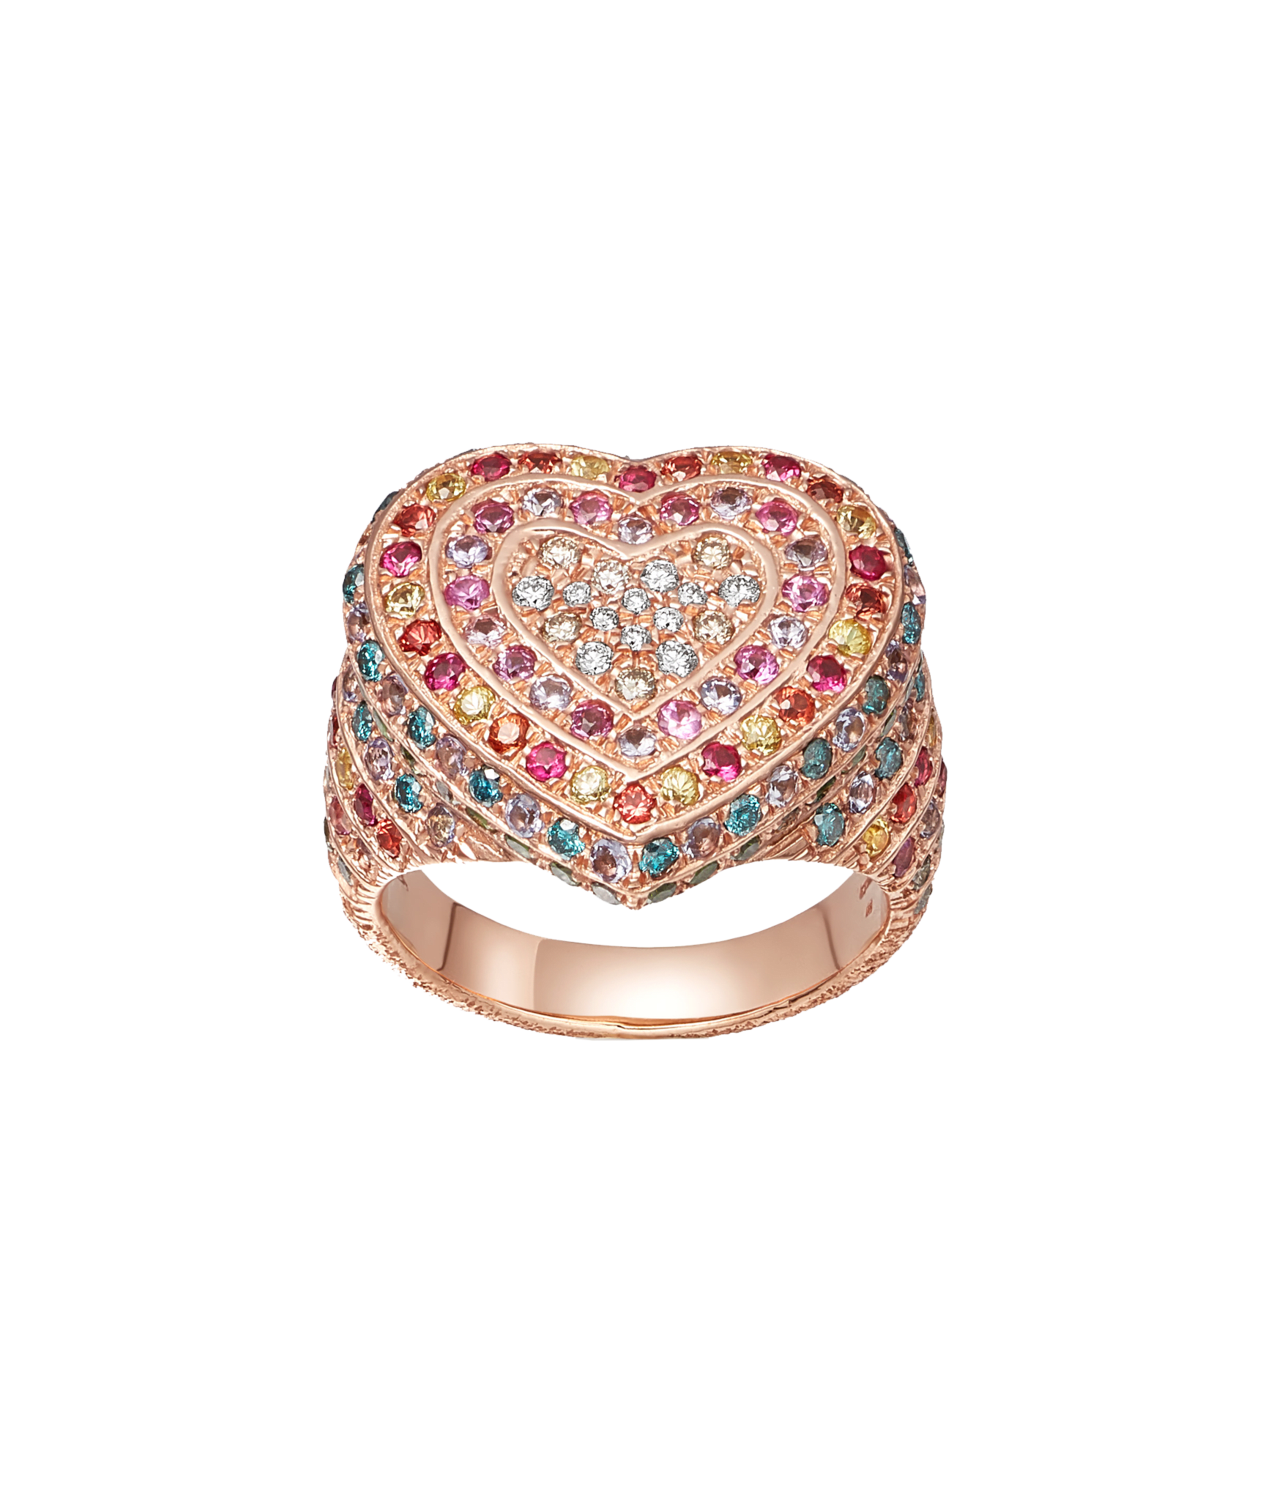 Carolina Bucci Rainbow Pavé Heart Ring in 18k Pink Gold